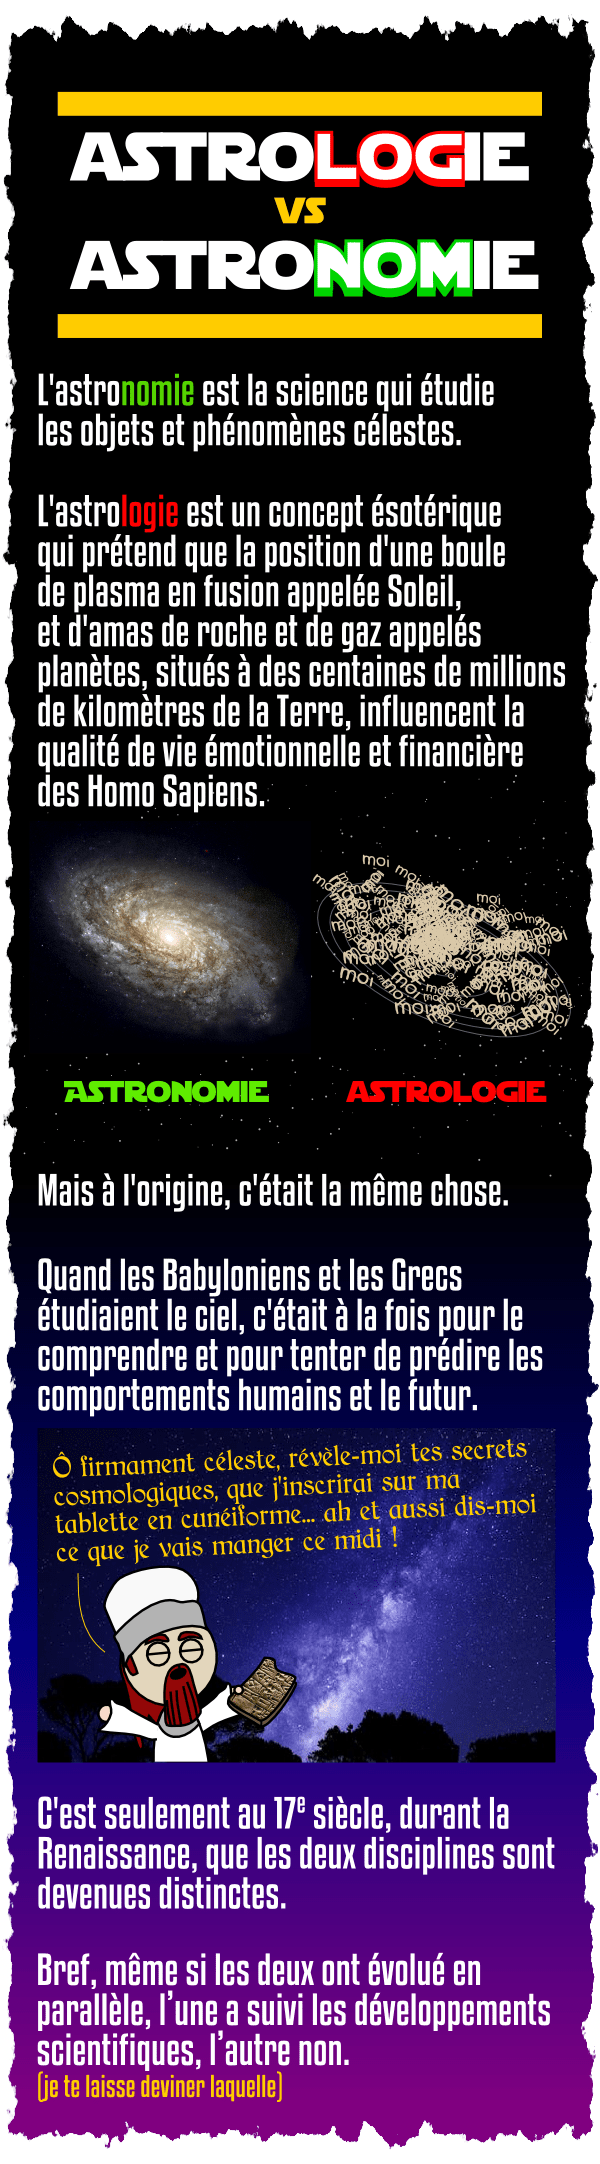 astrologie vs astronomie